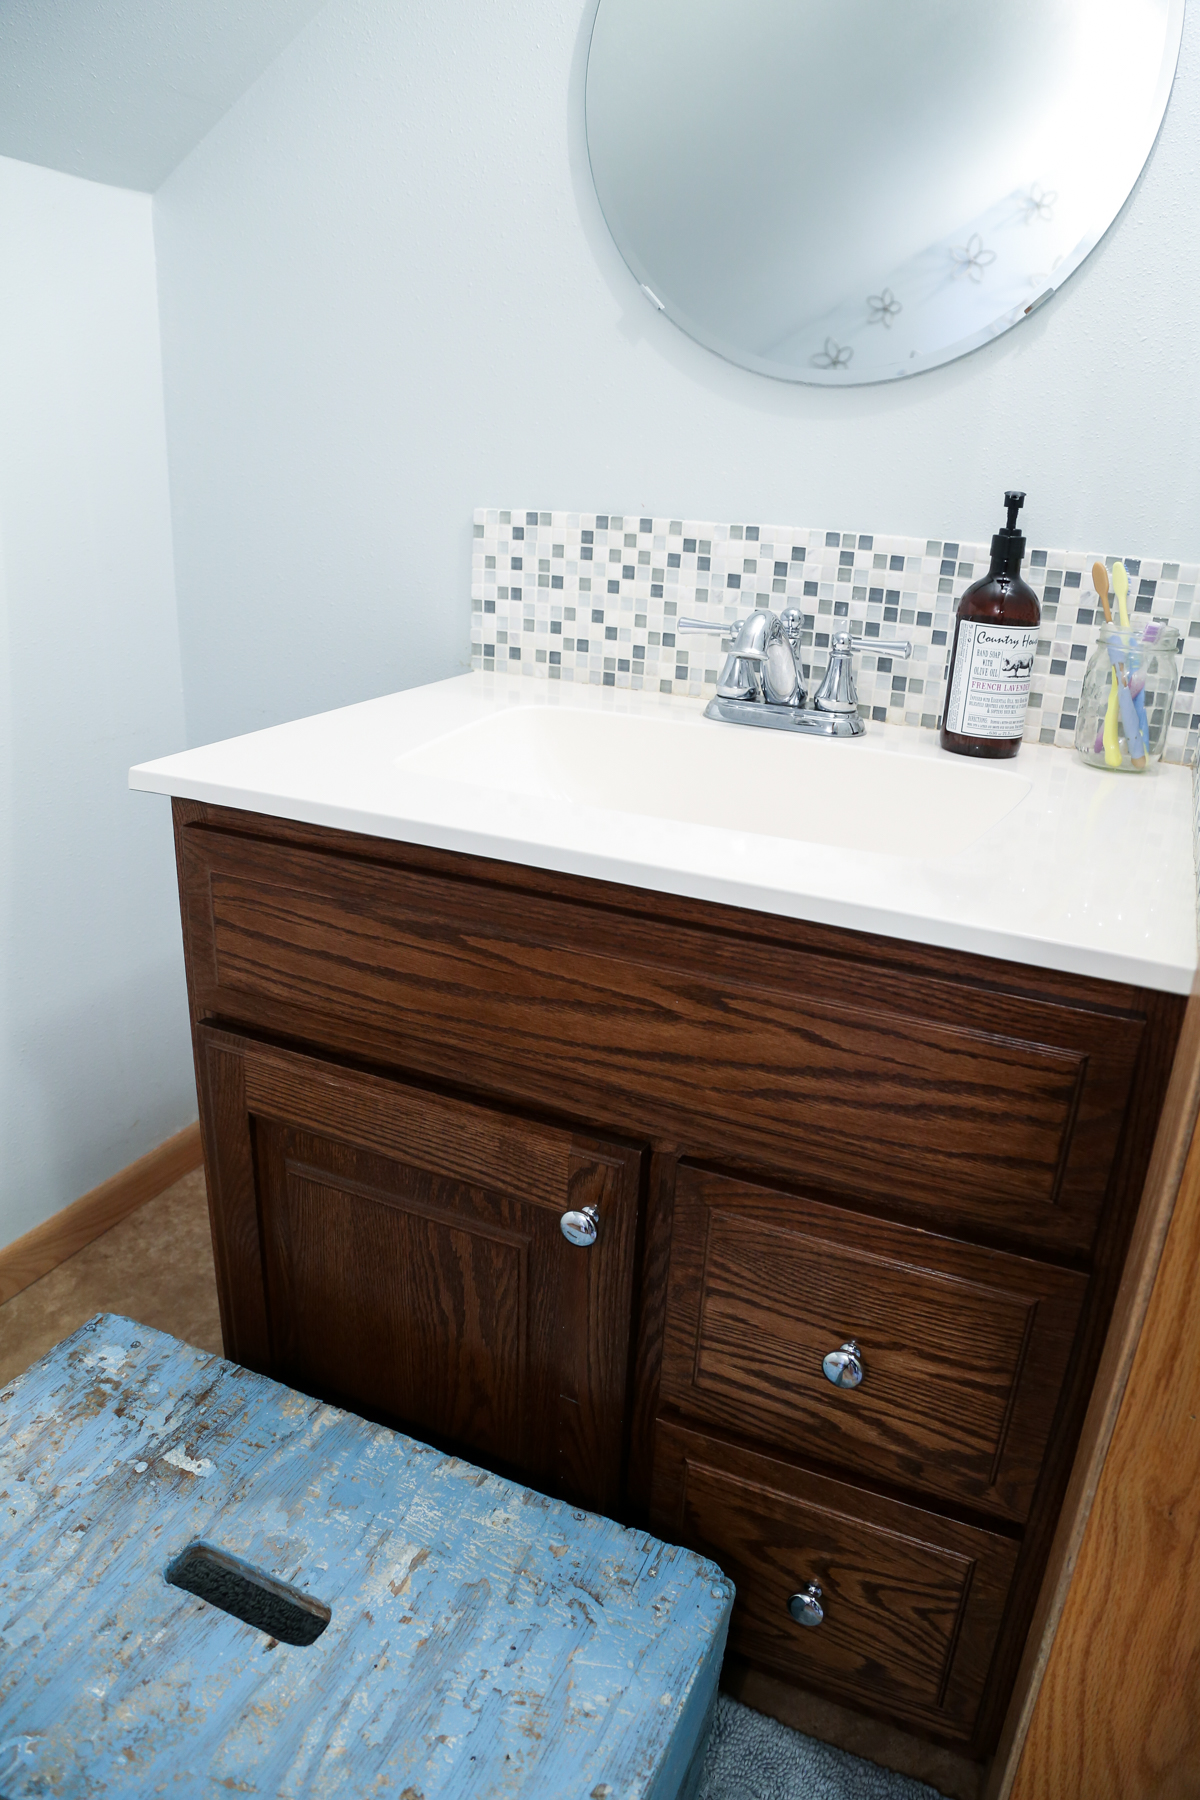 The farmhouse bathroom before a modern farmhouse update.